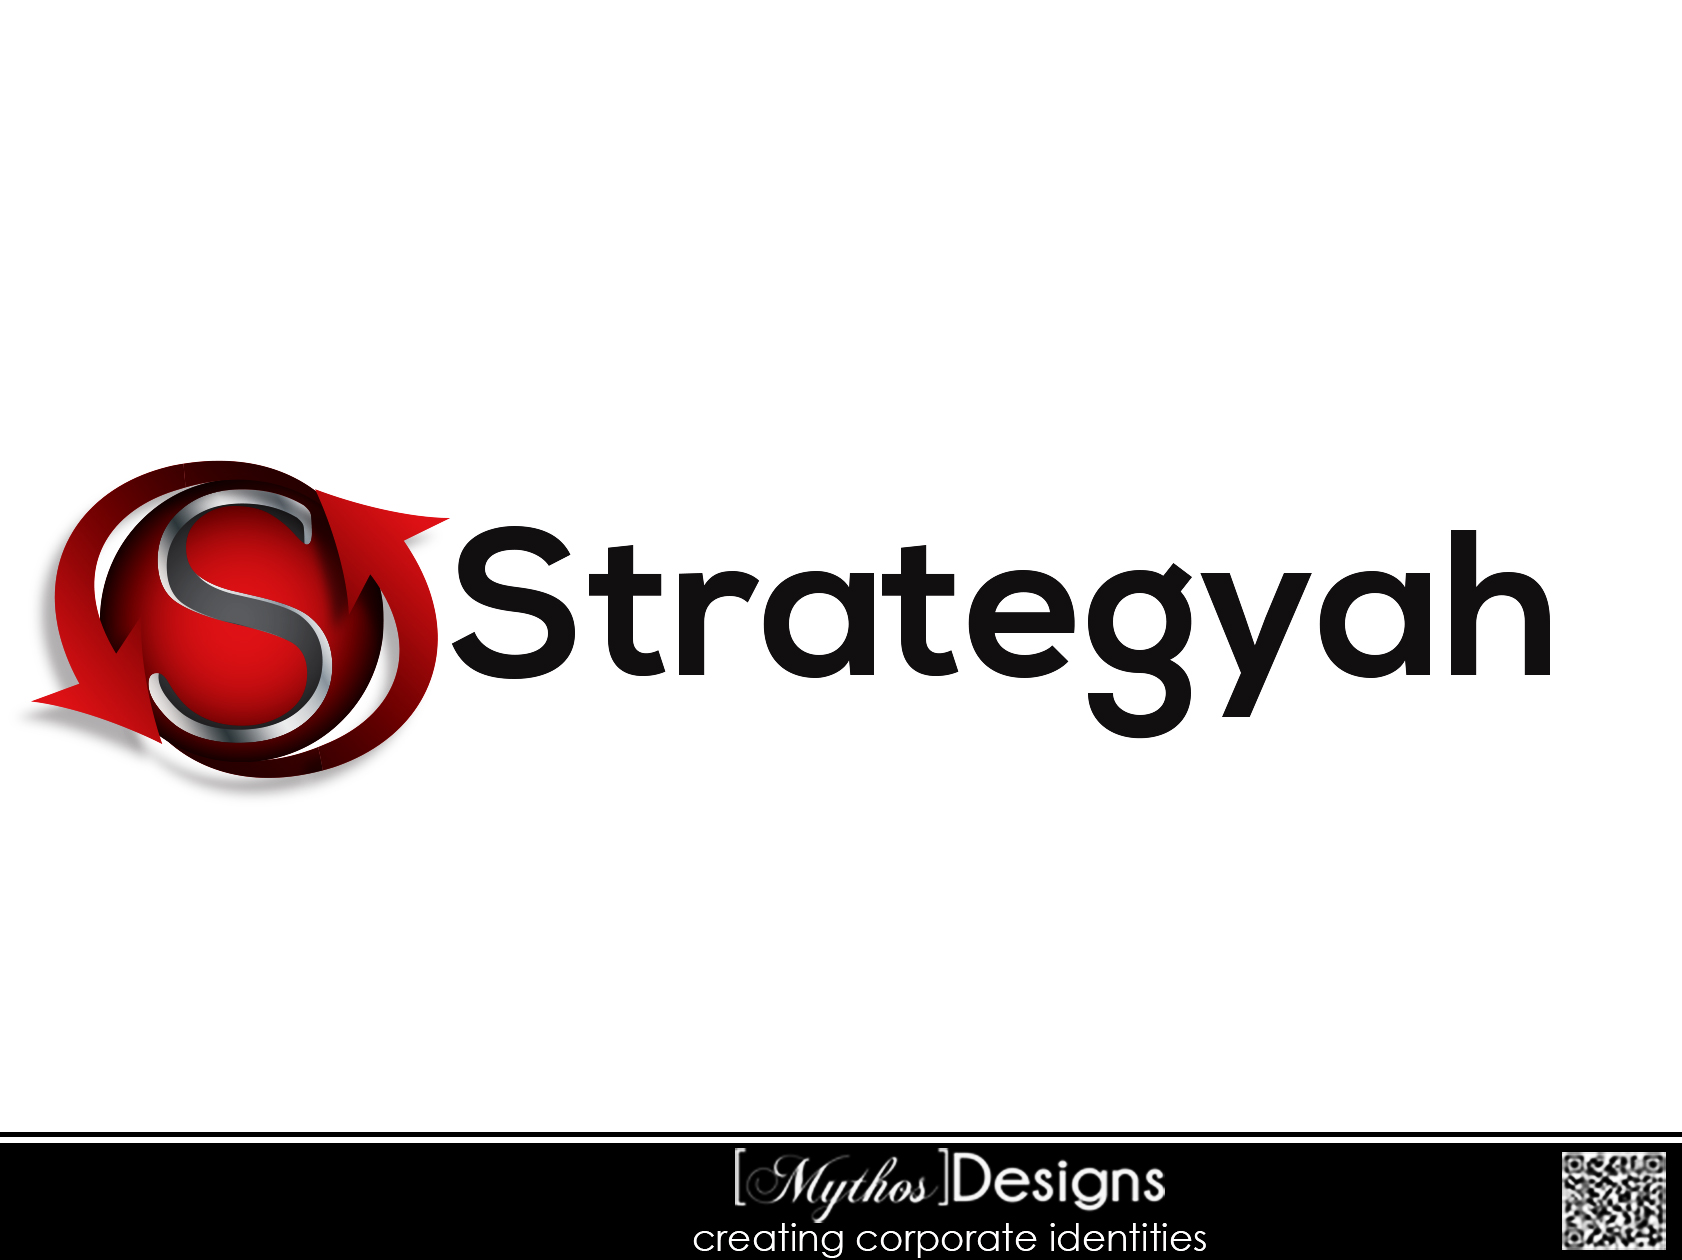 Logo Design by Mythos Designs - Entry No. 192 in the Logo Design Contest Creative Logo Design for Strategyah.